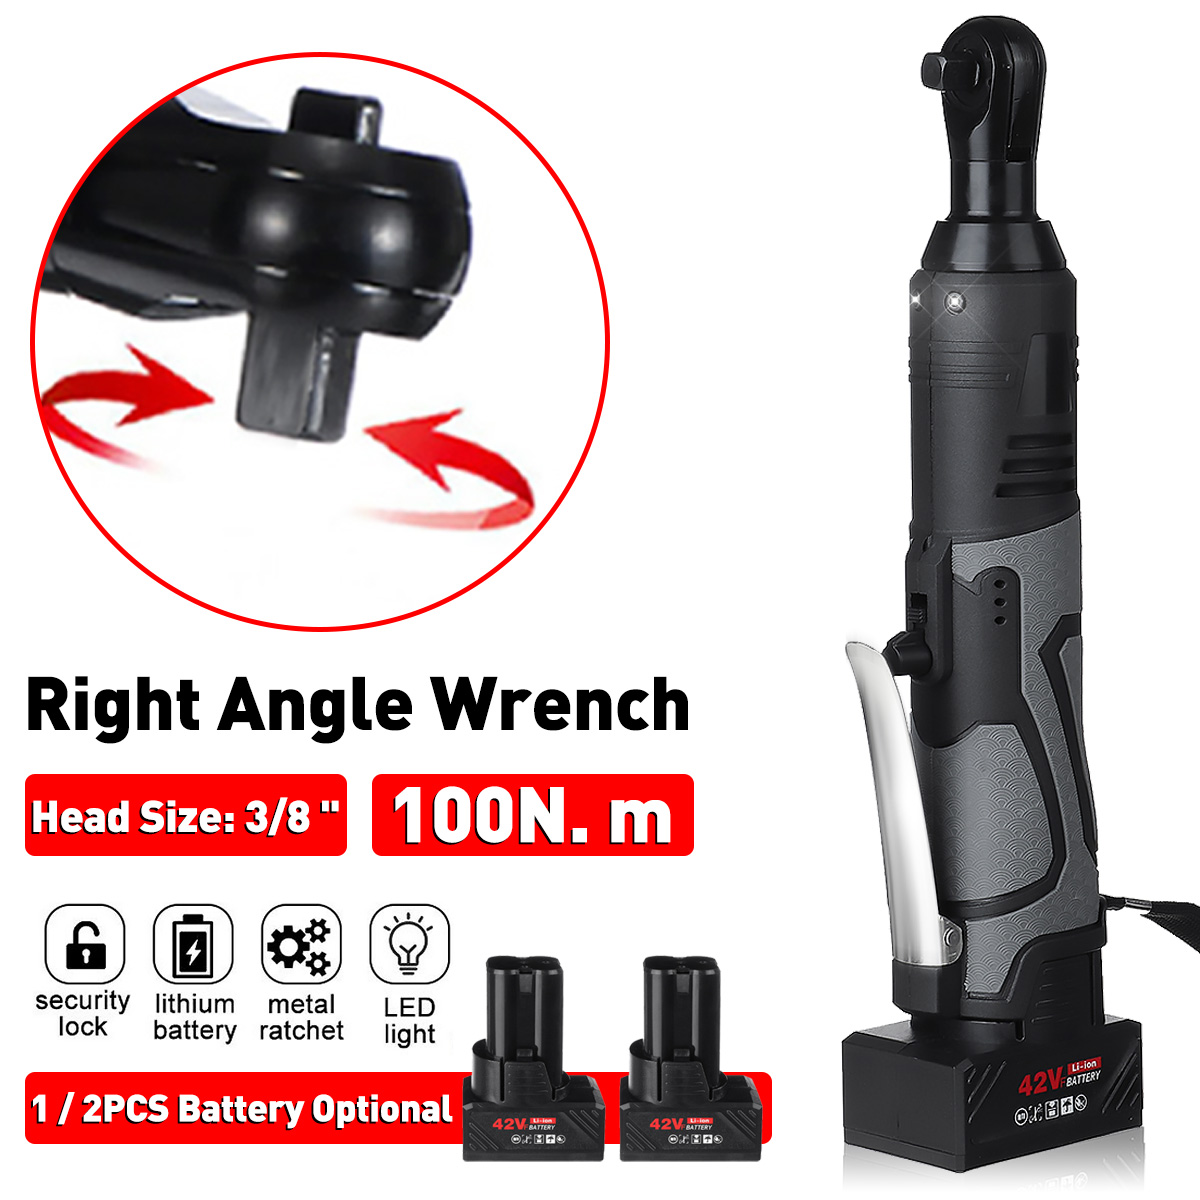 Doersupp 3/8'' 12V 100Nm Powerful Electric Cordless Wrench Ratchet Right Angle Wrench Tool Set With Rechargeable Battery